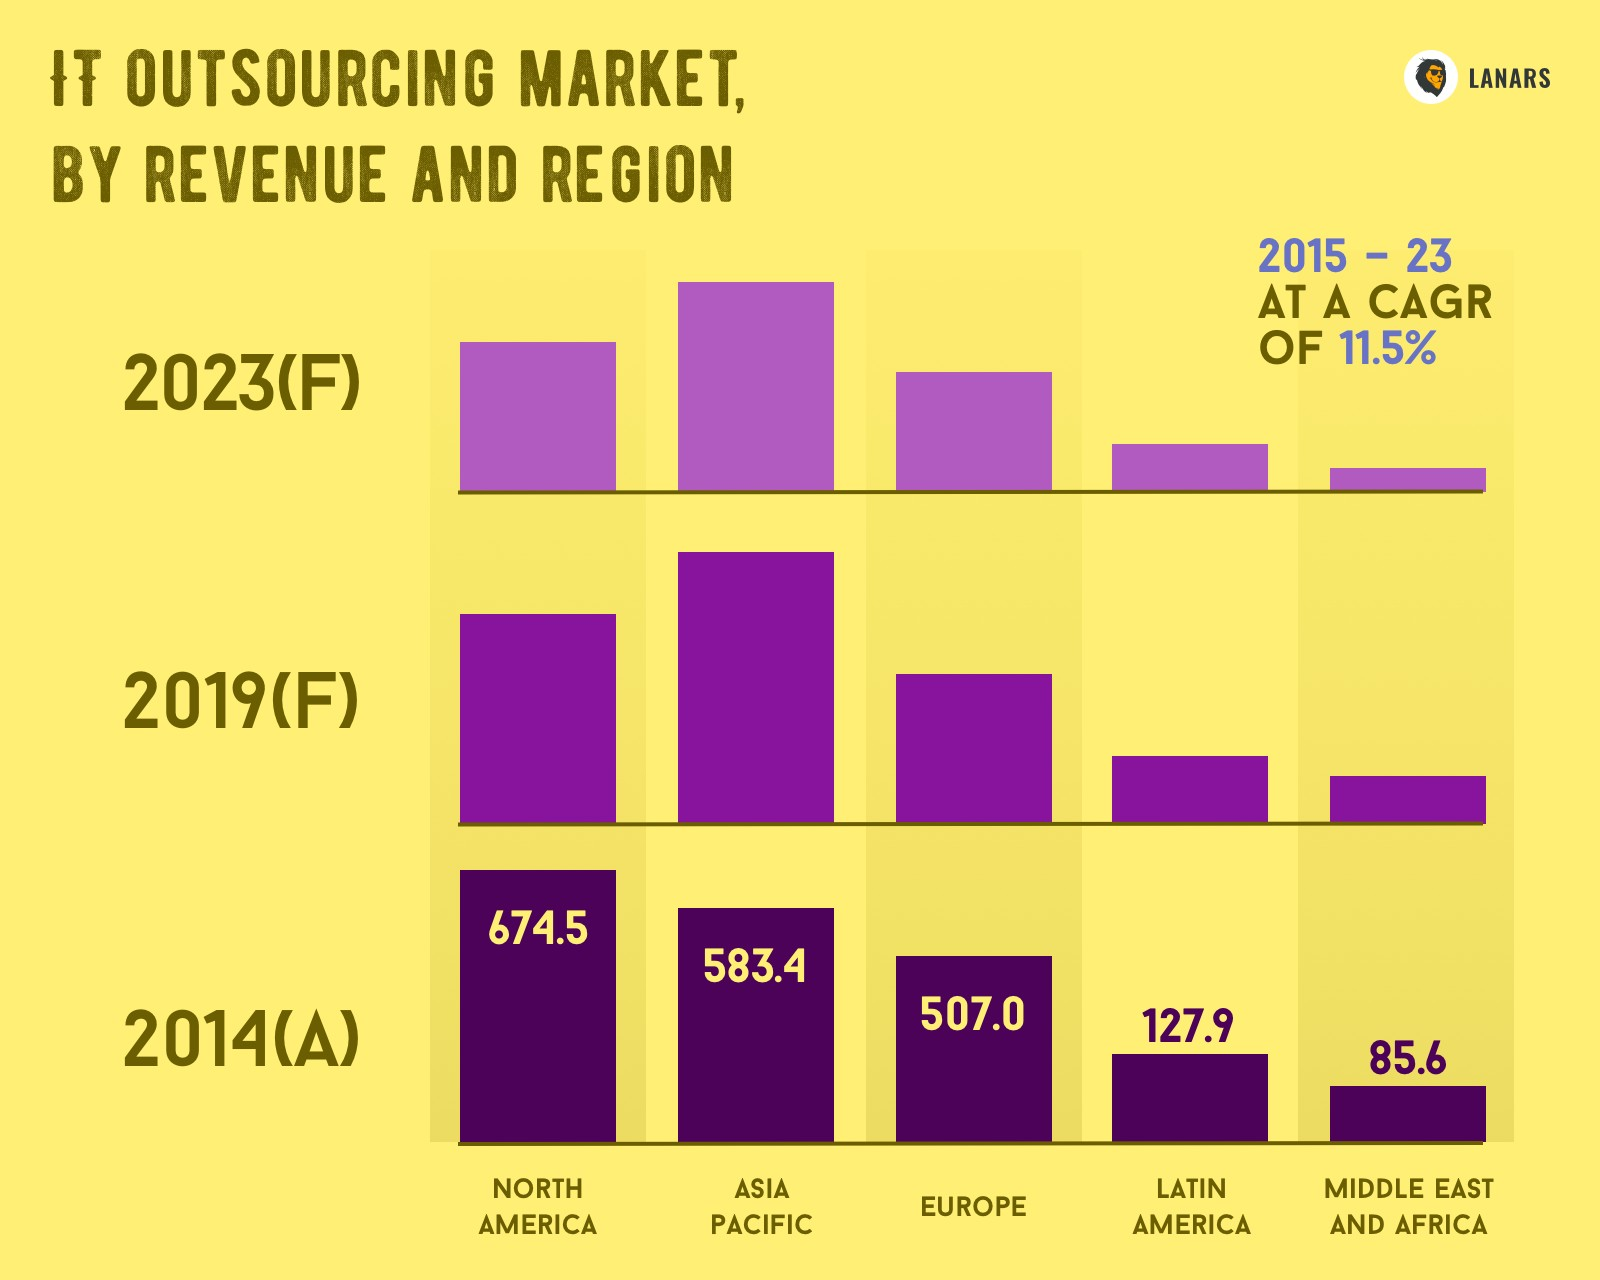 IT outsourcing market, by revenue and region